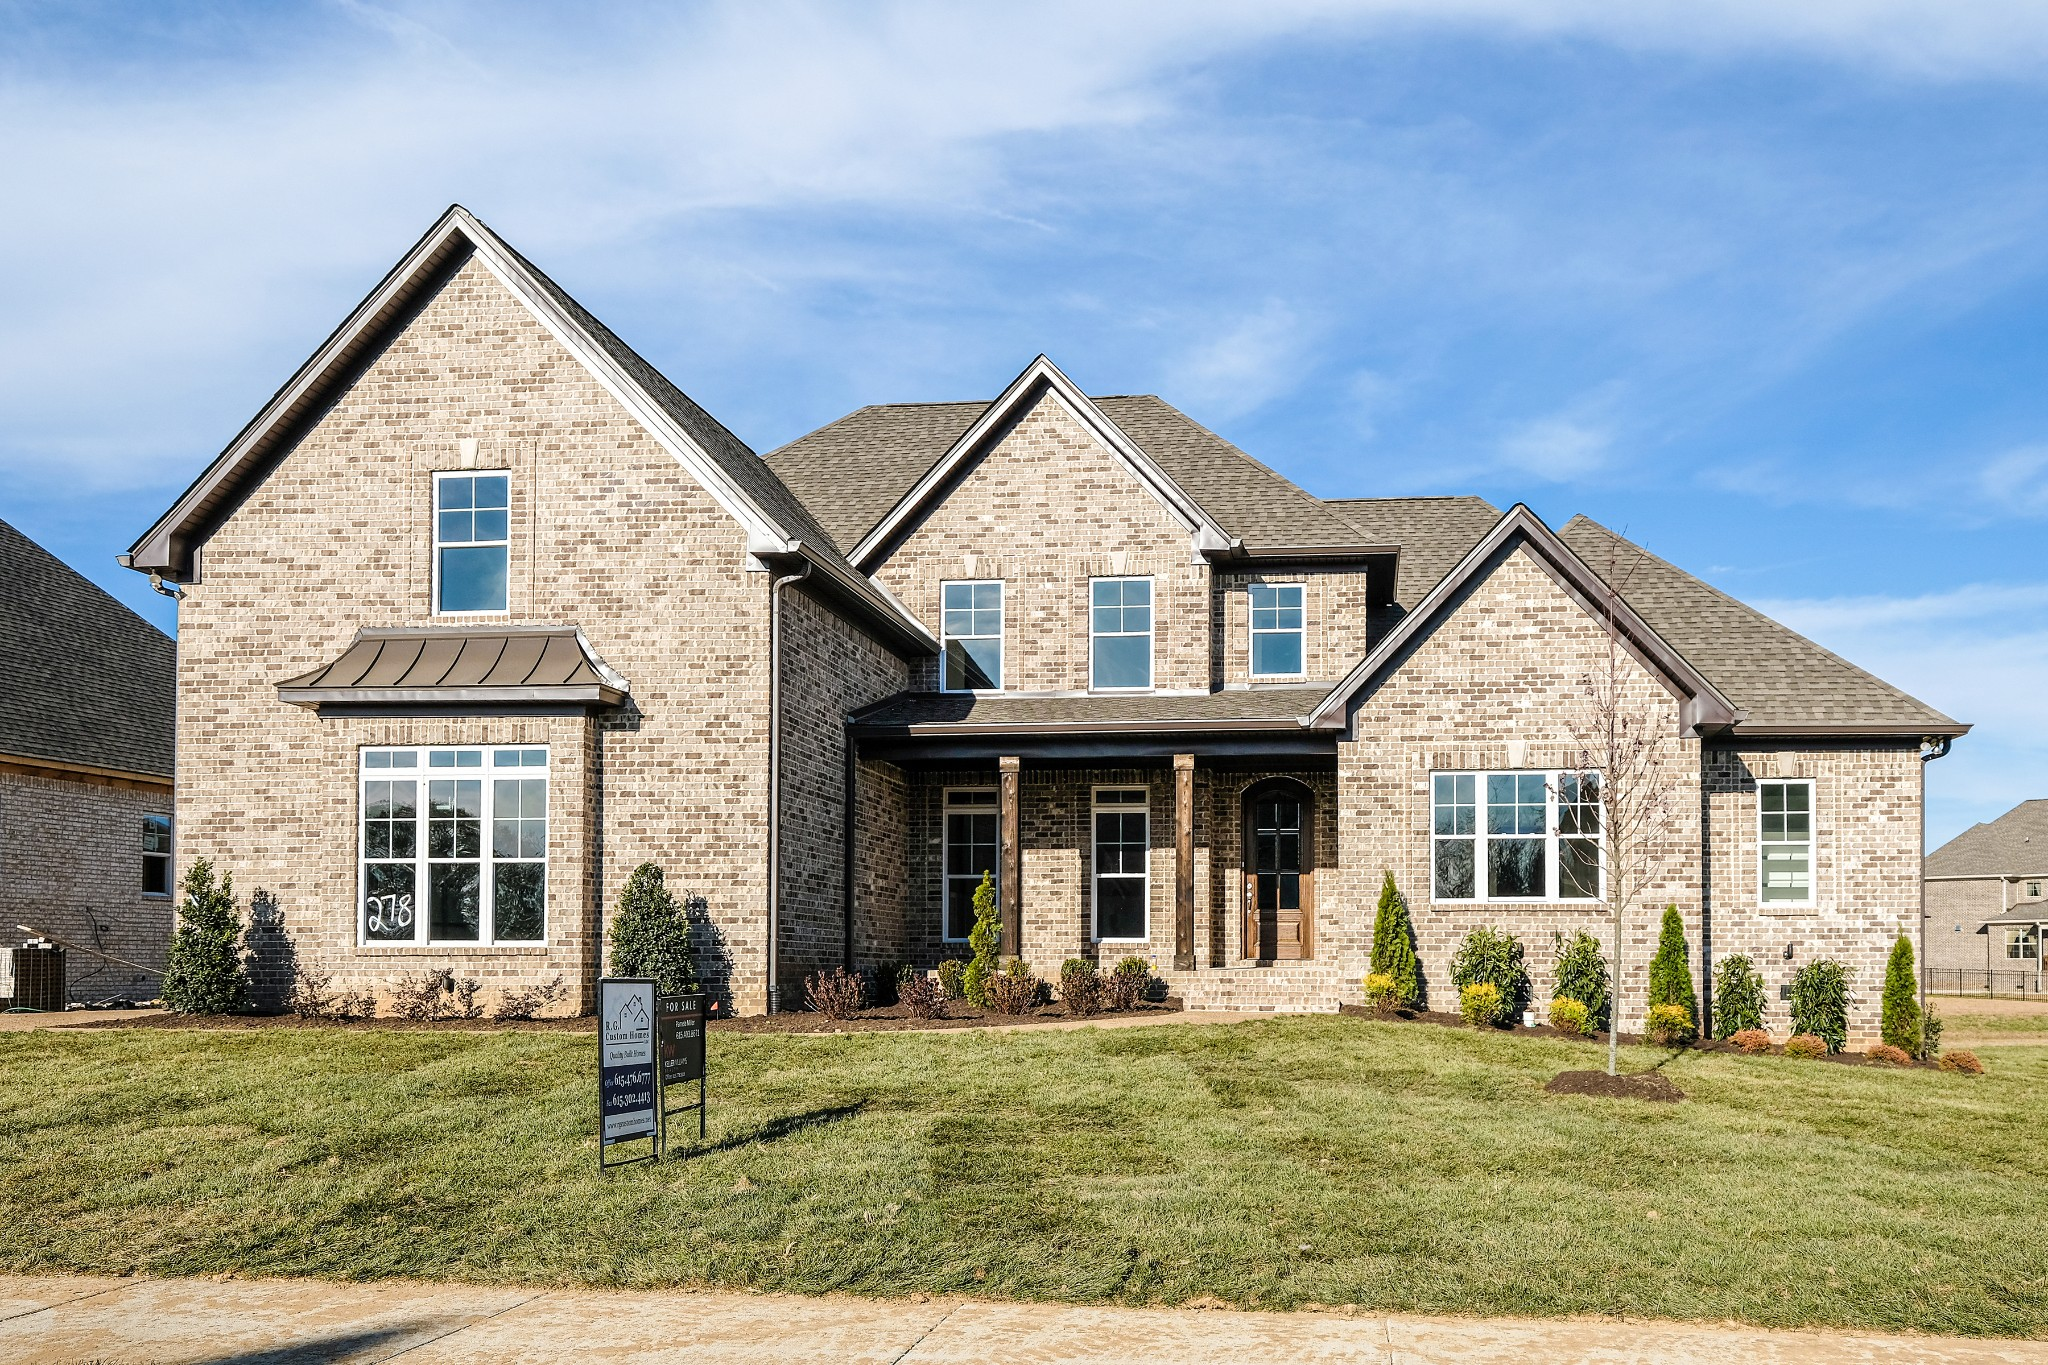 2038 Autumn Ridge Way (Lot 278), Spring Hill, TN 37174 - Spring Hill, TN real estate listing